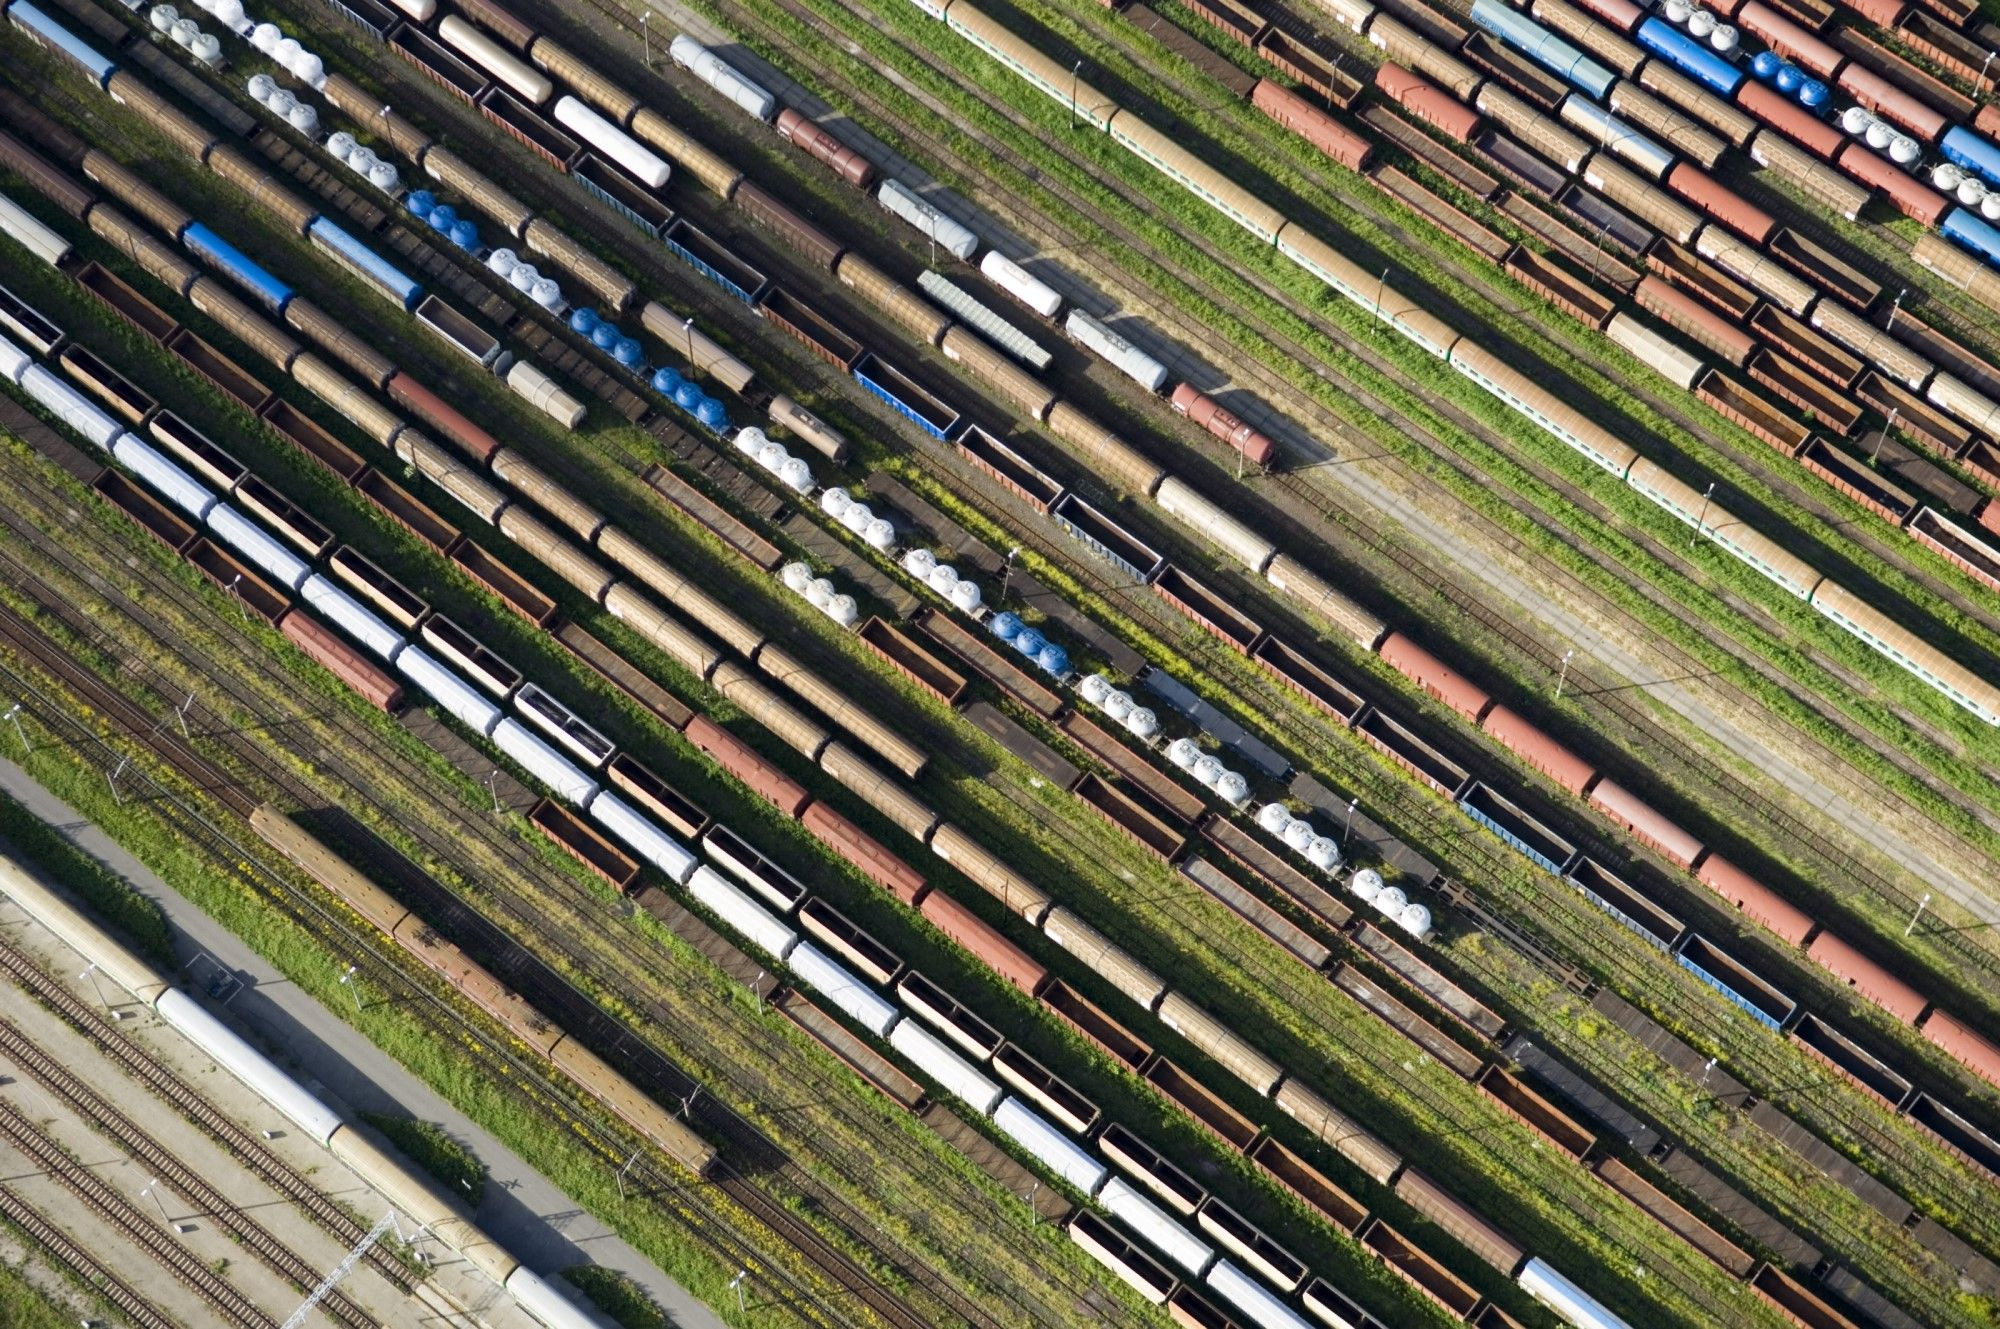 Aerial View Of A Railway 000014509354 Full